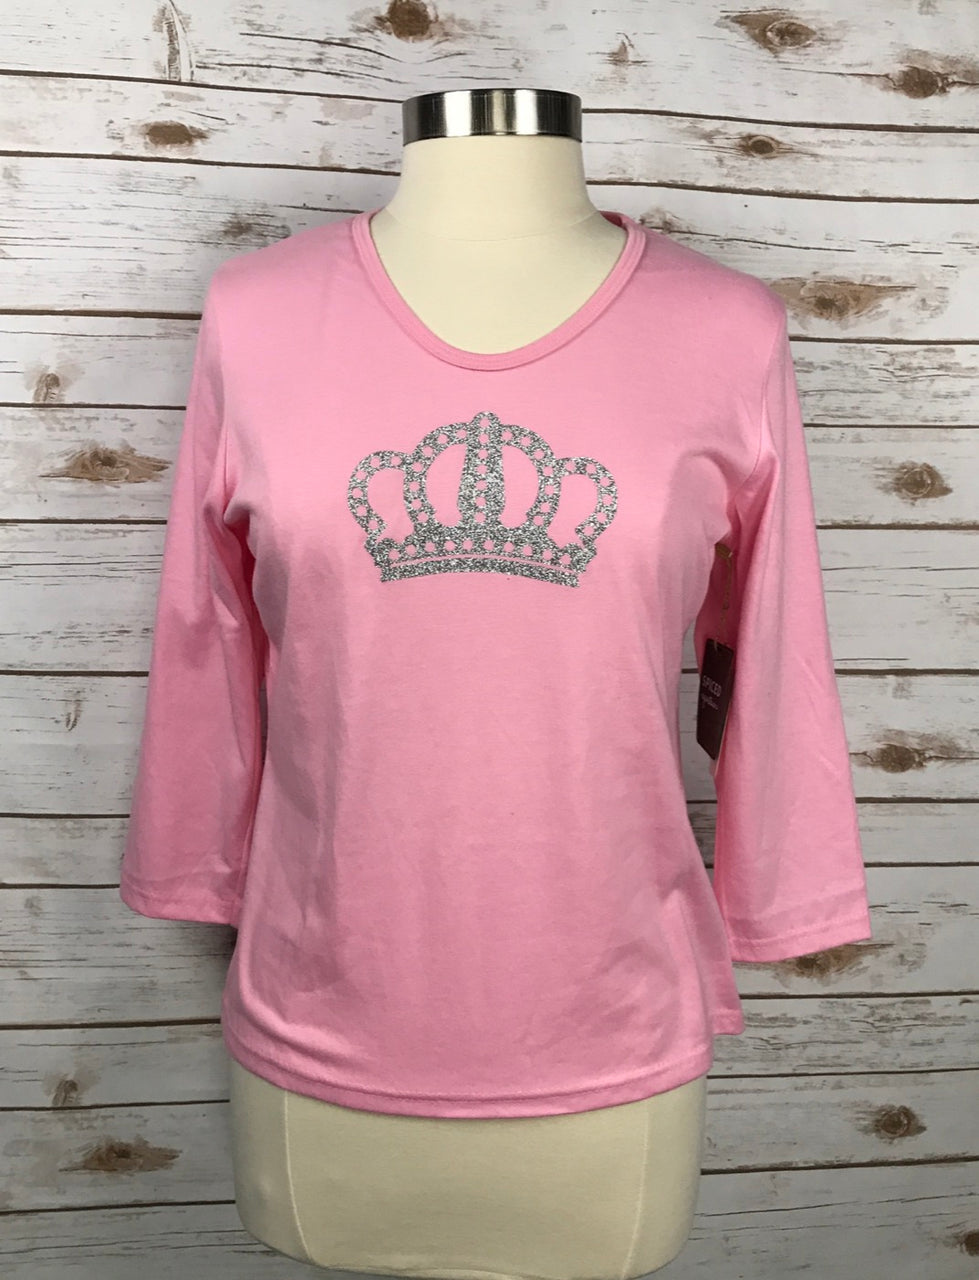 Spiced Equestrian Crown Tee in Pink - Women's Large